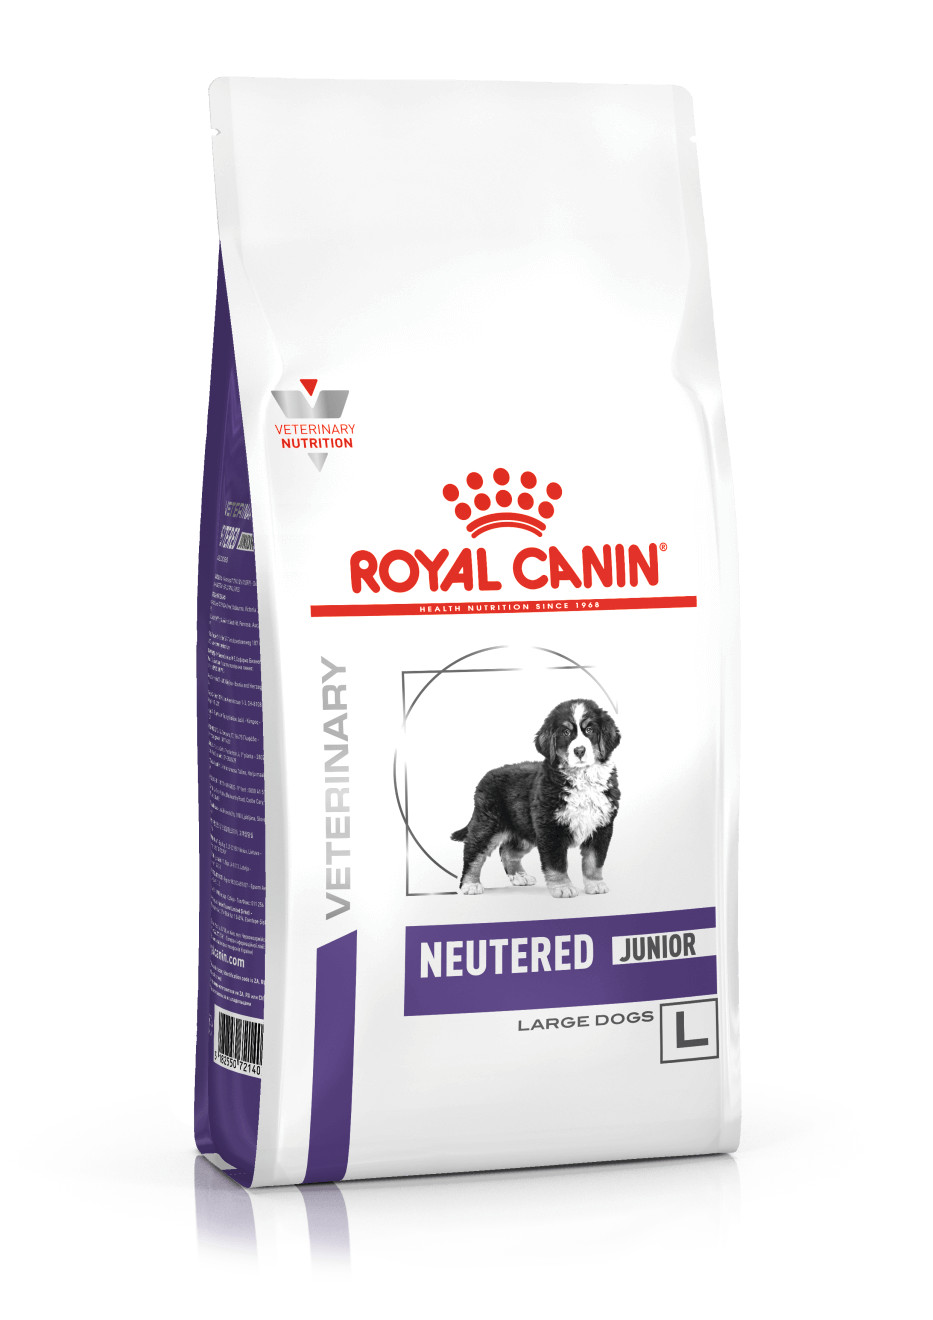 Royal Canin Veterinary Neutered Junior Large Dogs pour chien